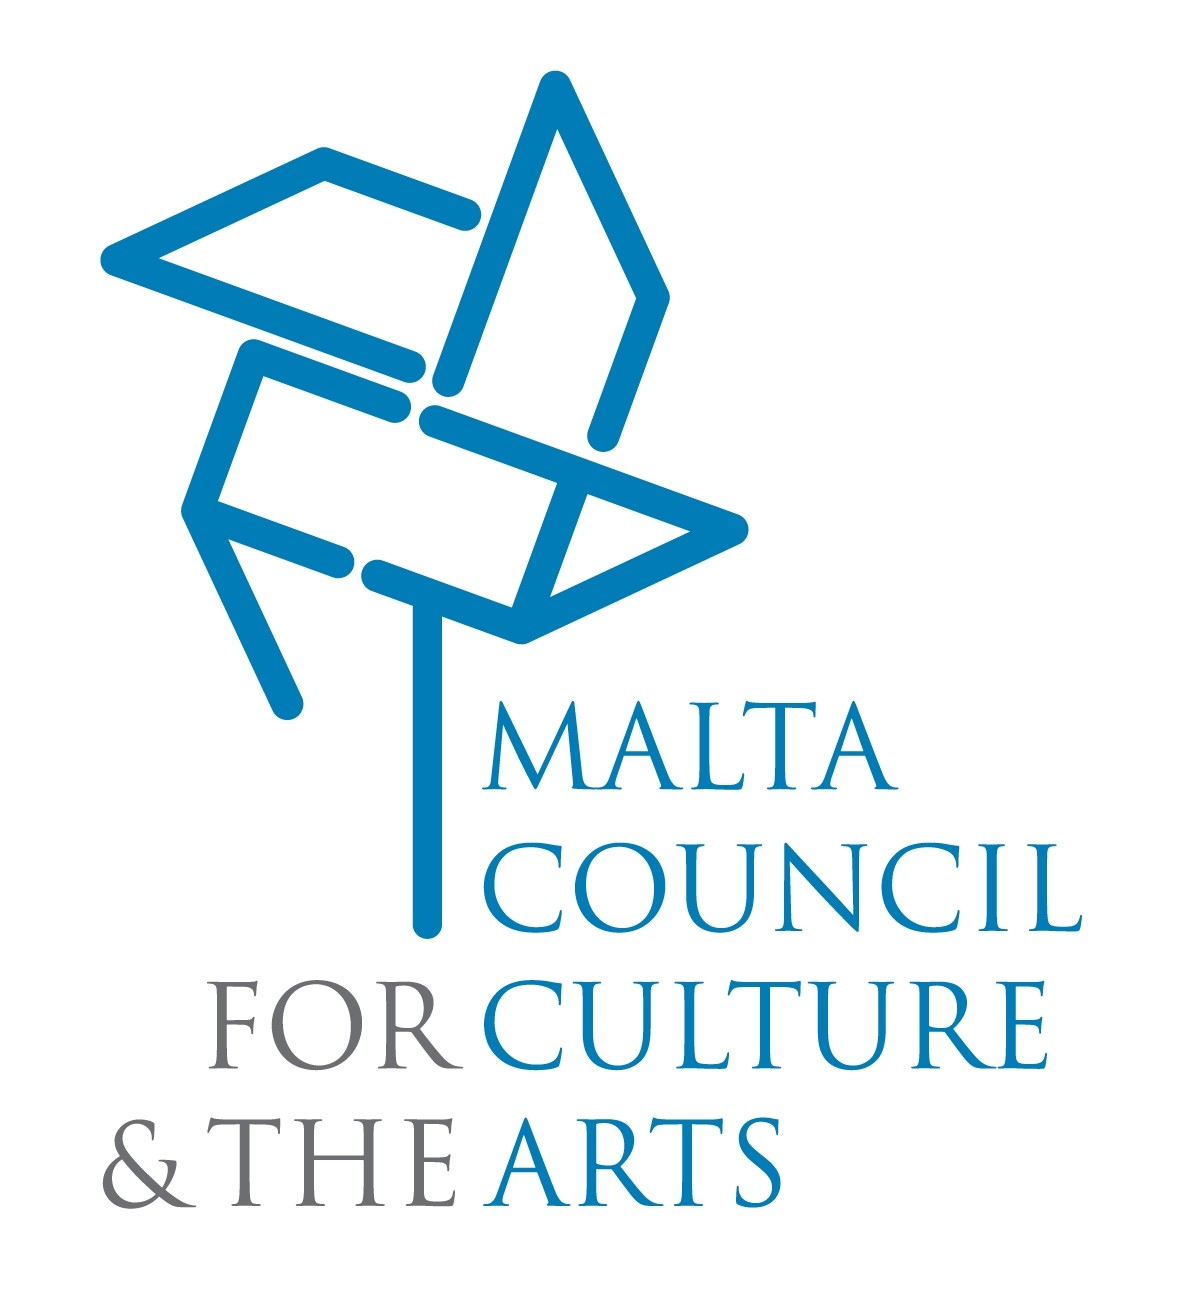 Malta Council for Culture and the Arts